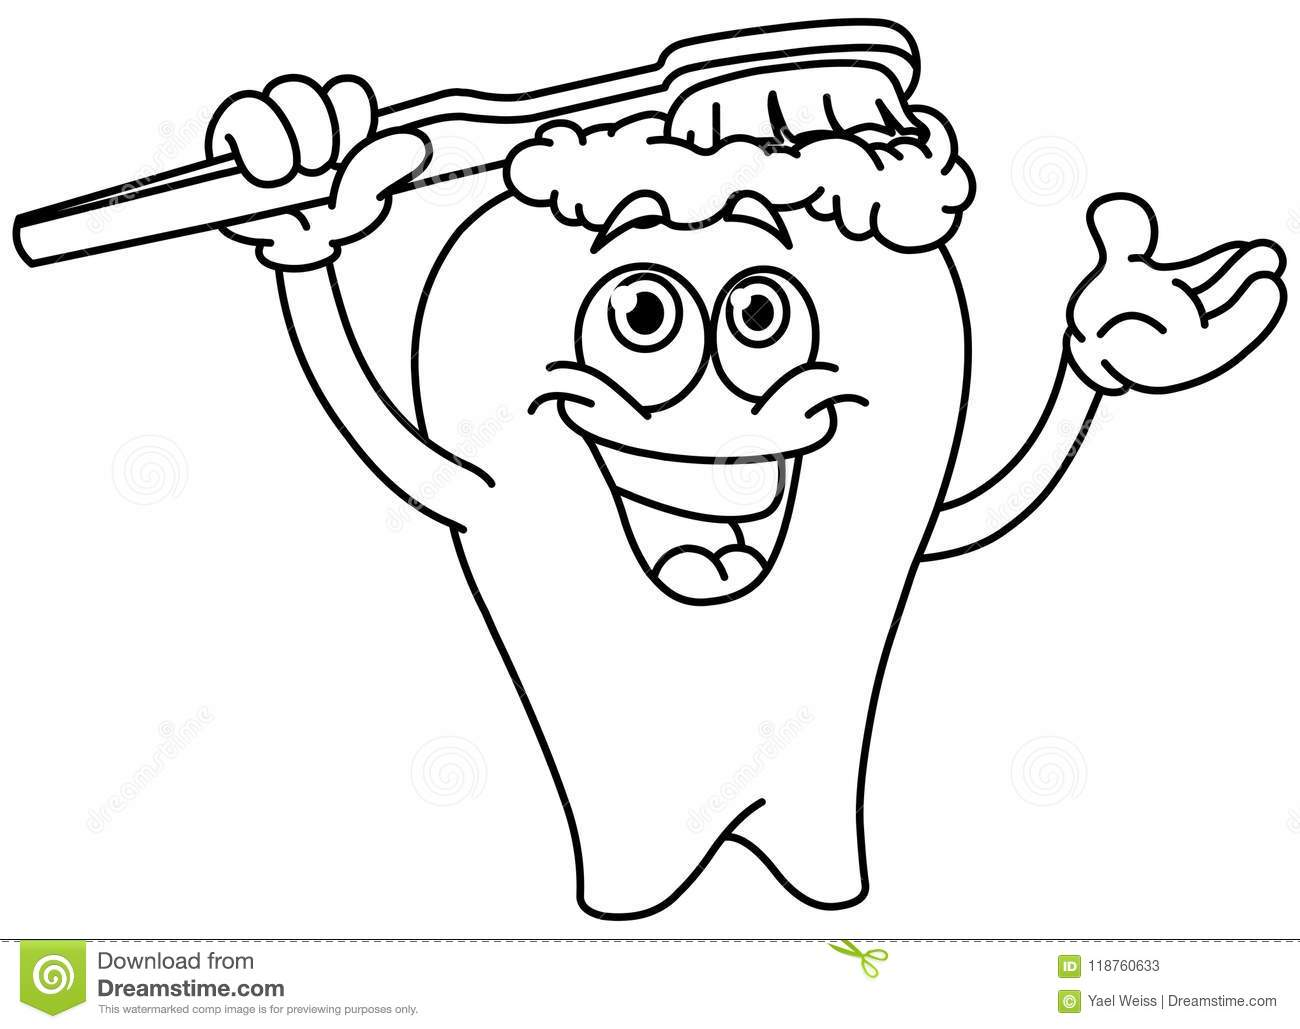 Outlined Brushing Tooth Stock Vector Illustration Of